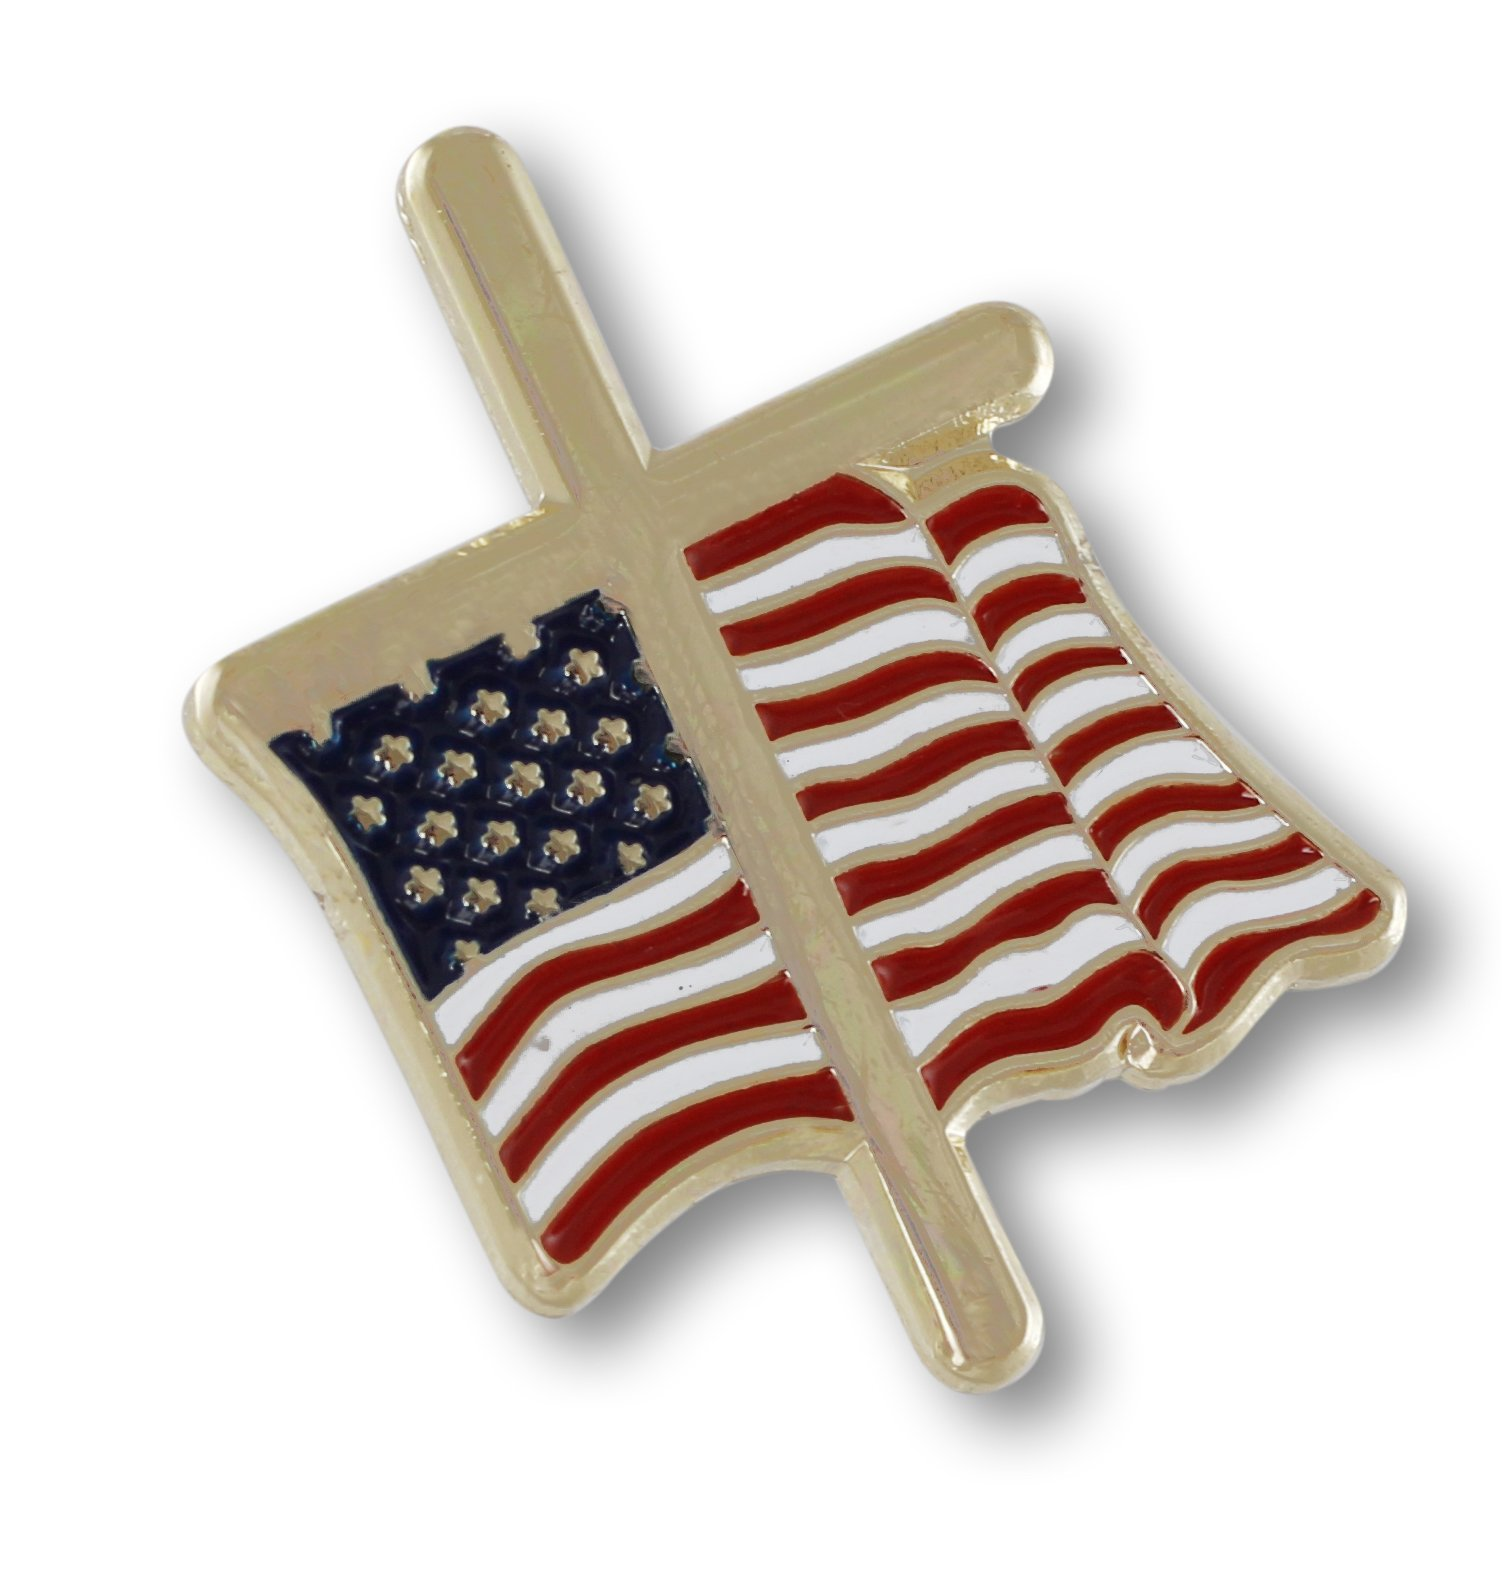 American Flag with Religious Cross Lapel Pin (50 Pins) by Forge (Image #3)